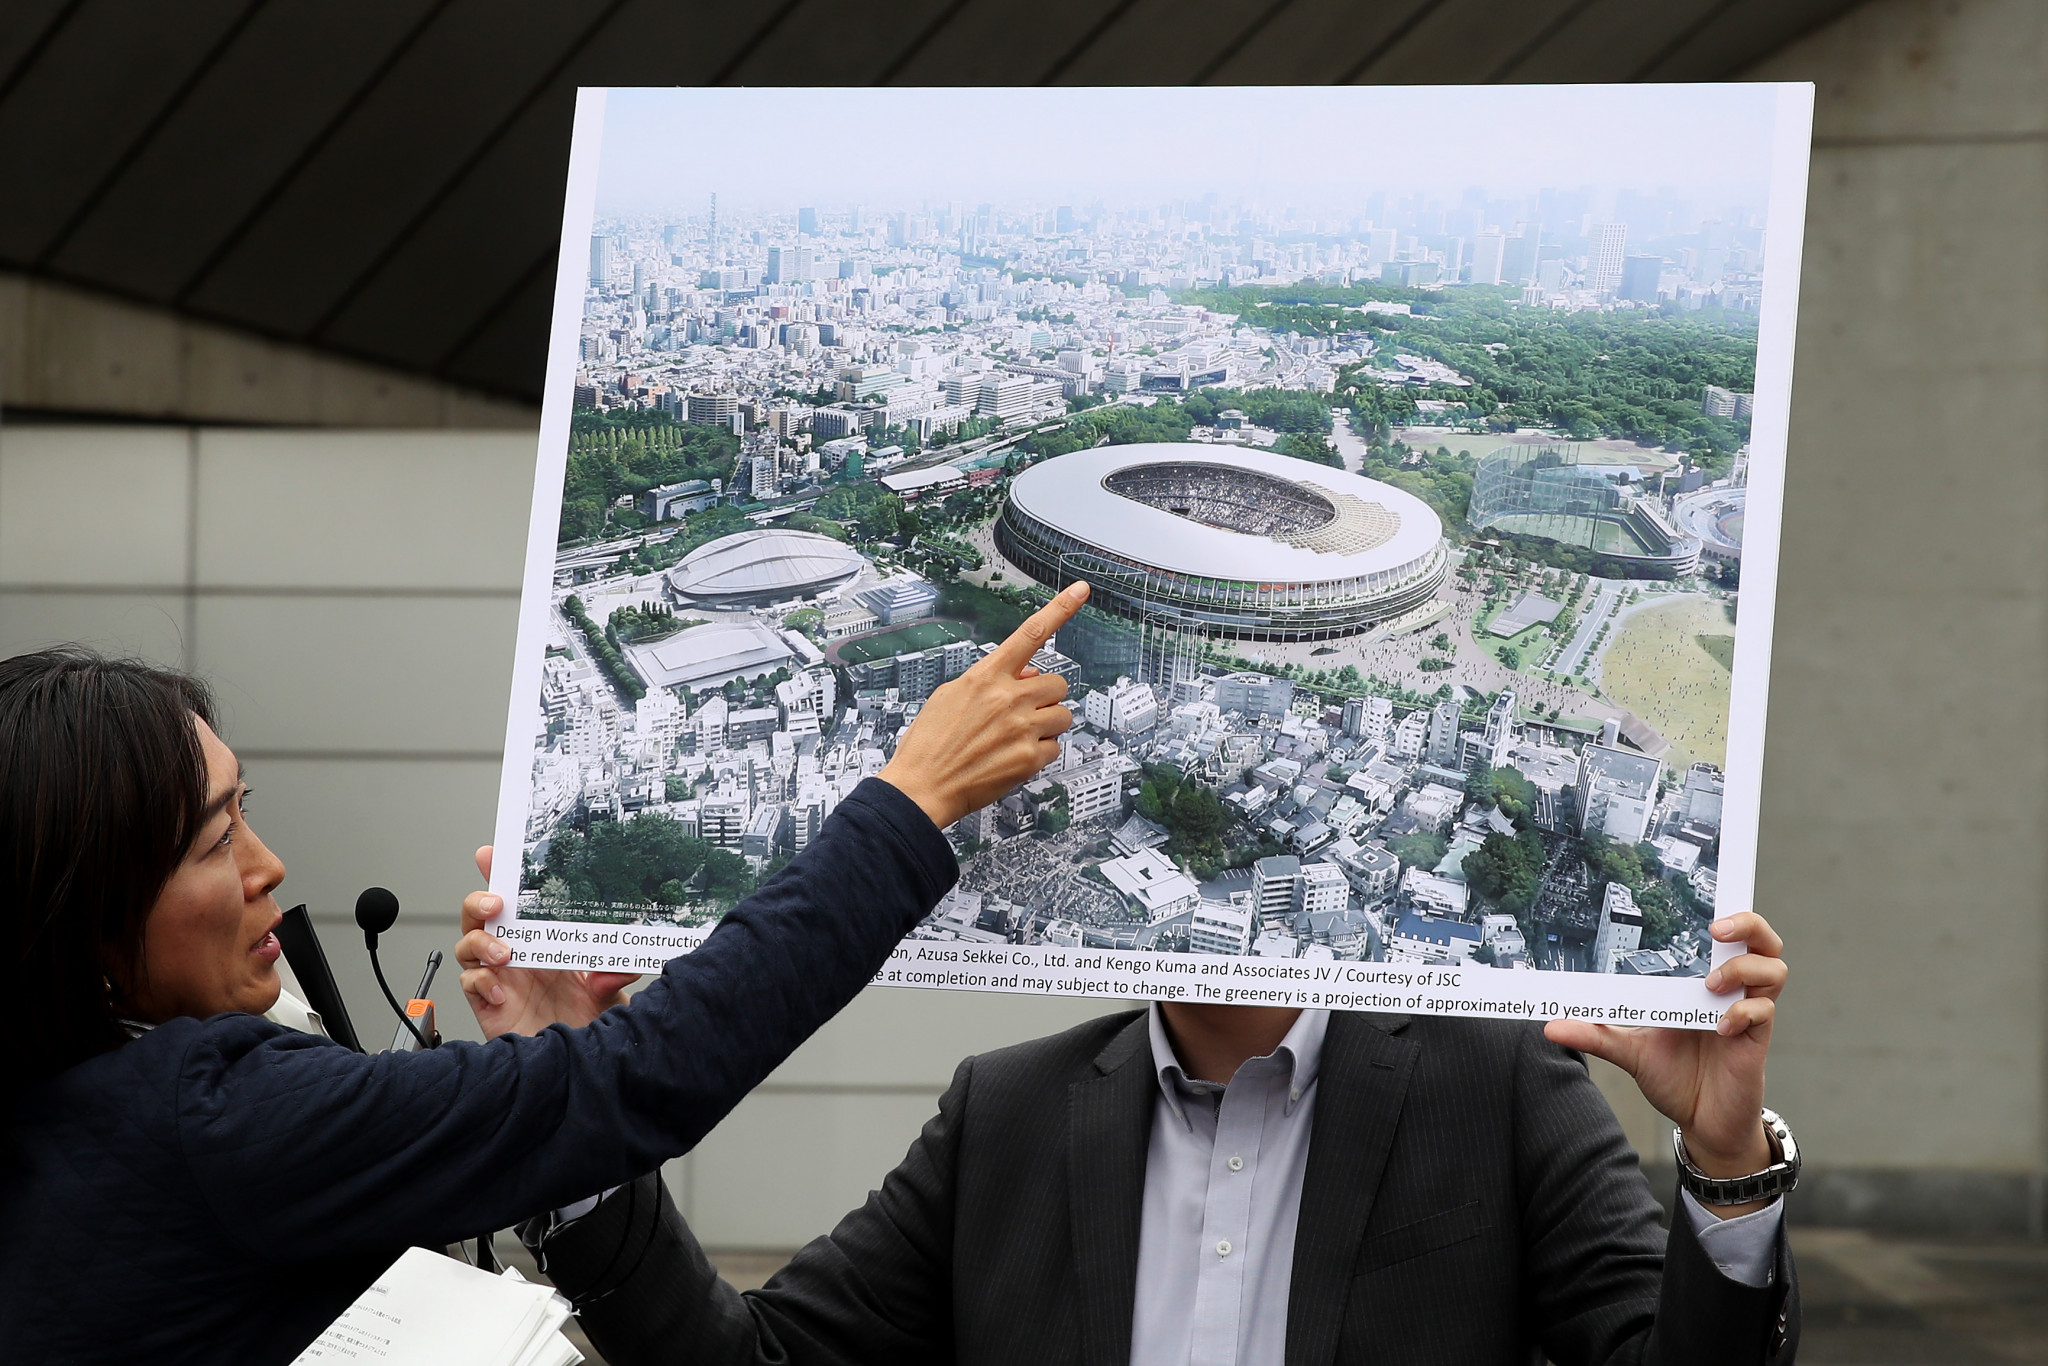 Tokyo 2020 organisers told journalists at the World Press Briefing that construction at the Olympic New National Stadium would be finished by the end of November ©Getty Images